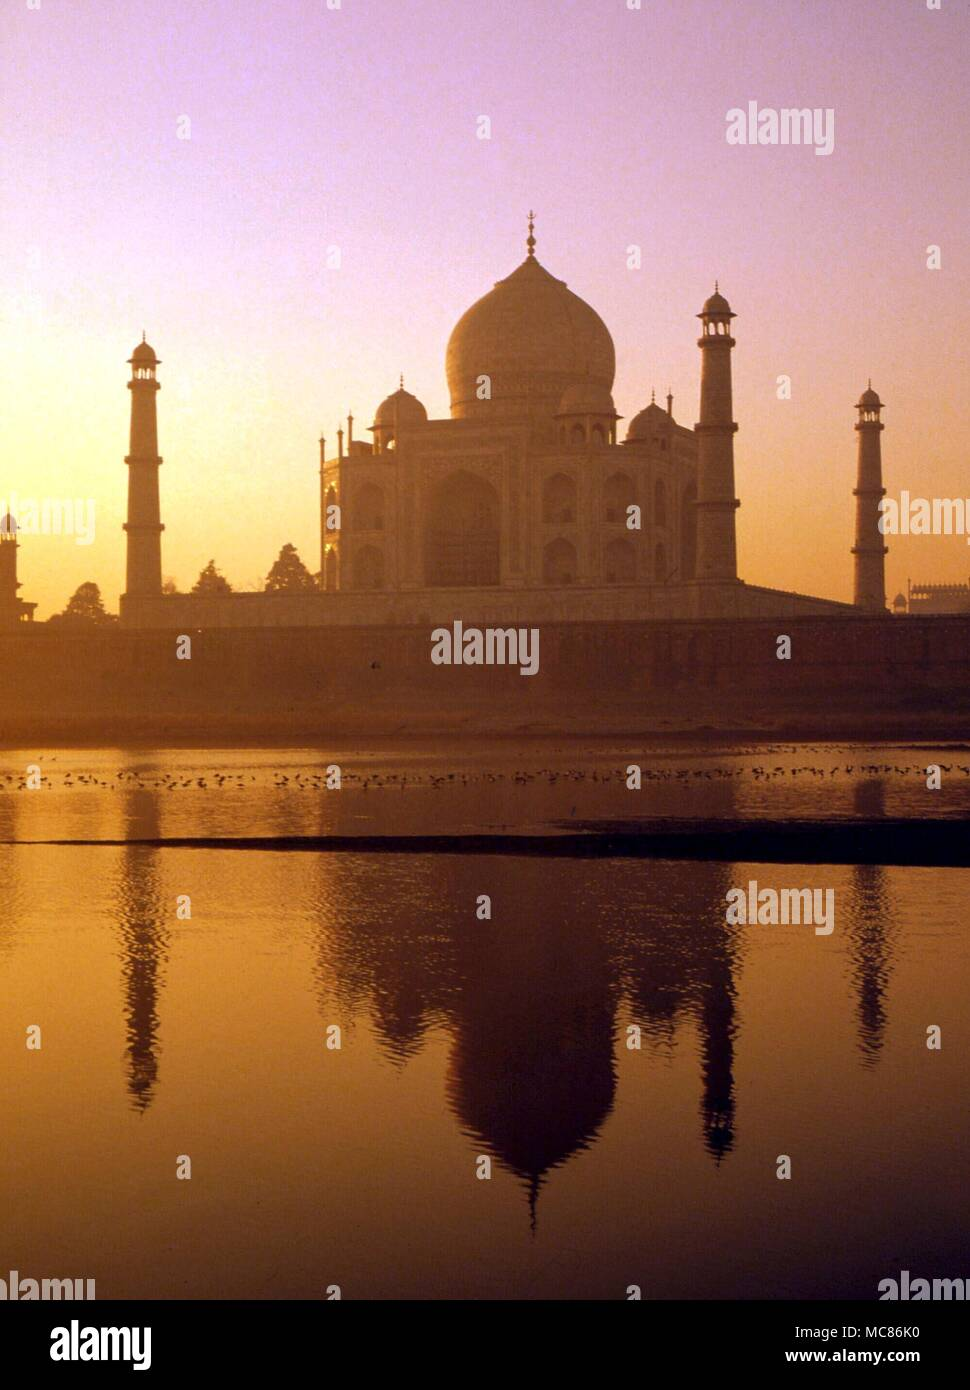 INDIA The Taj Majal, constructed by the Moghul Emperor, Shah Jahan, in memory of his favourite wife, Mumtaz Mahal, it is described as the most perfect building erected to love. Completed 1653 Stock Photo